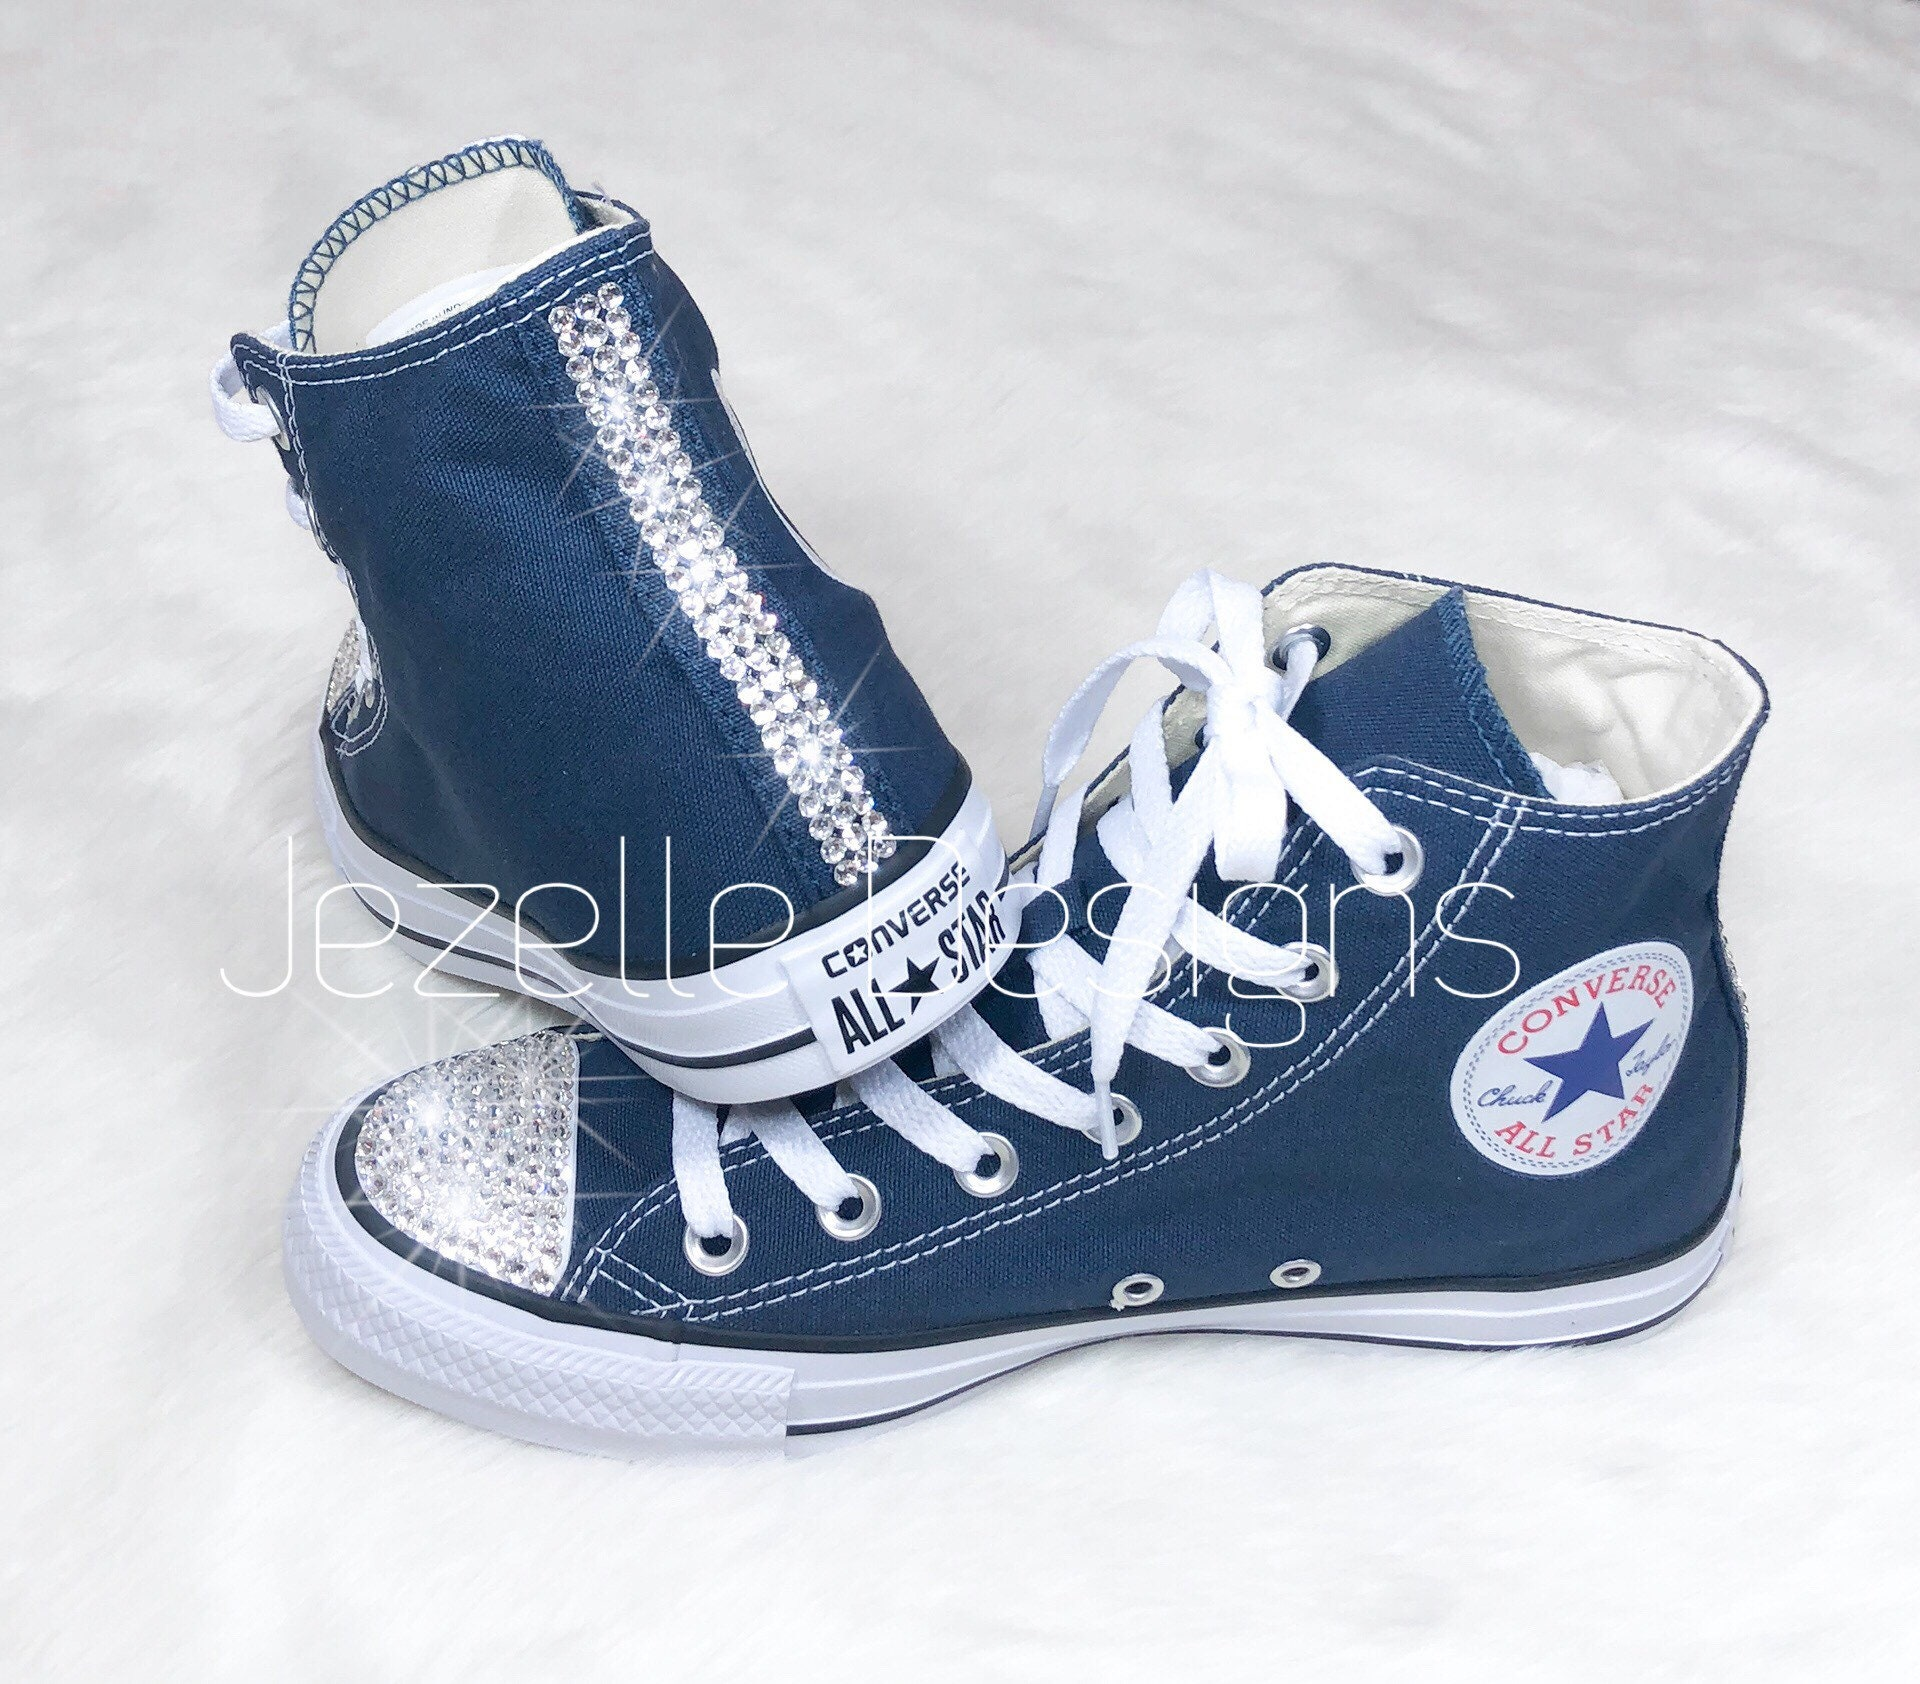 b1d5d4da5457d Swarovski Crystal Converse, Custom Hand Jeweled Bling High Top Chuck  Taylors, Bedazzled Converse Personalized Just for You, Ships FREE!